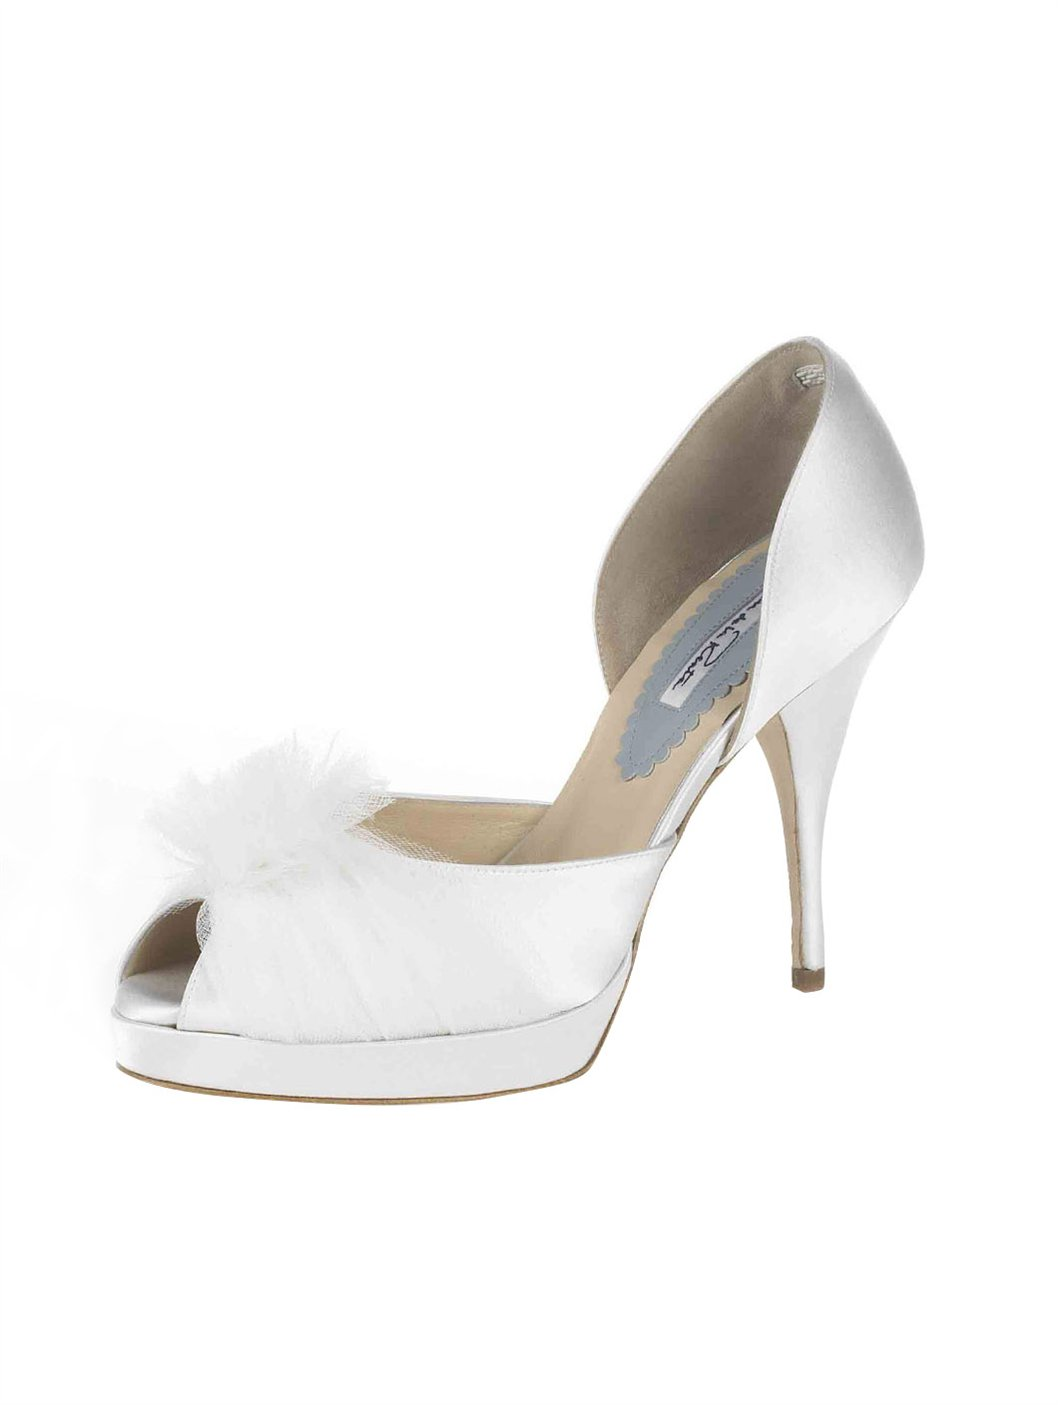 Bridal-shoes-oscar-de-la-renta-wedding-heels-white-satin-dorsay-tulle-poof.original